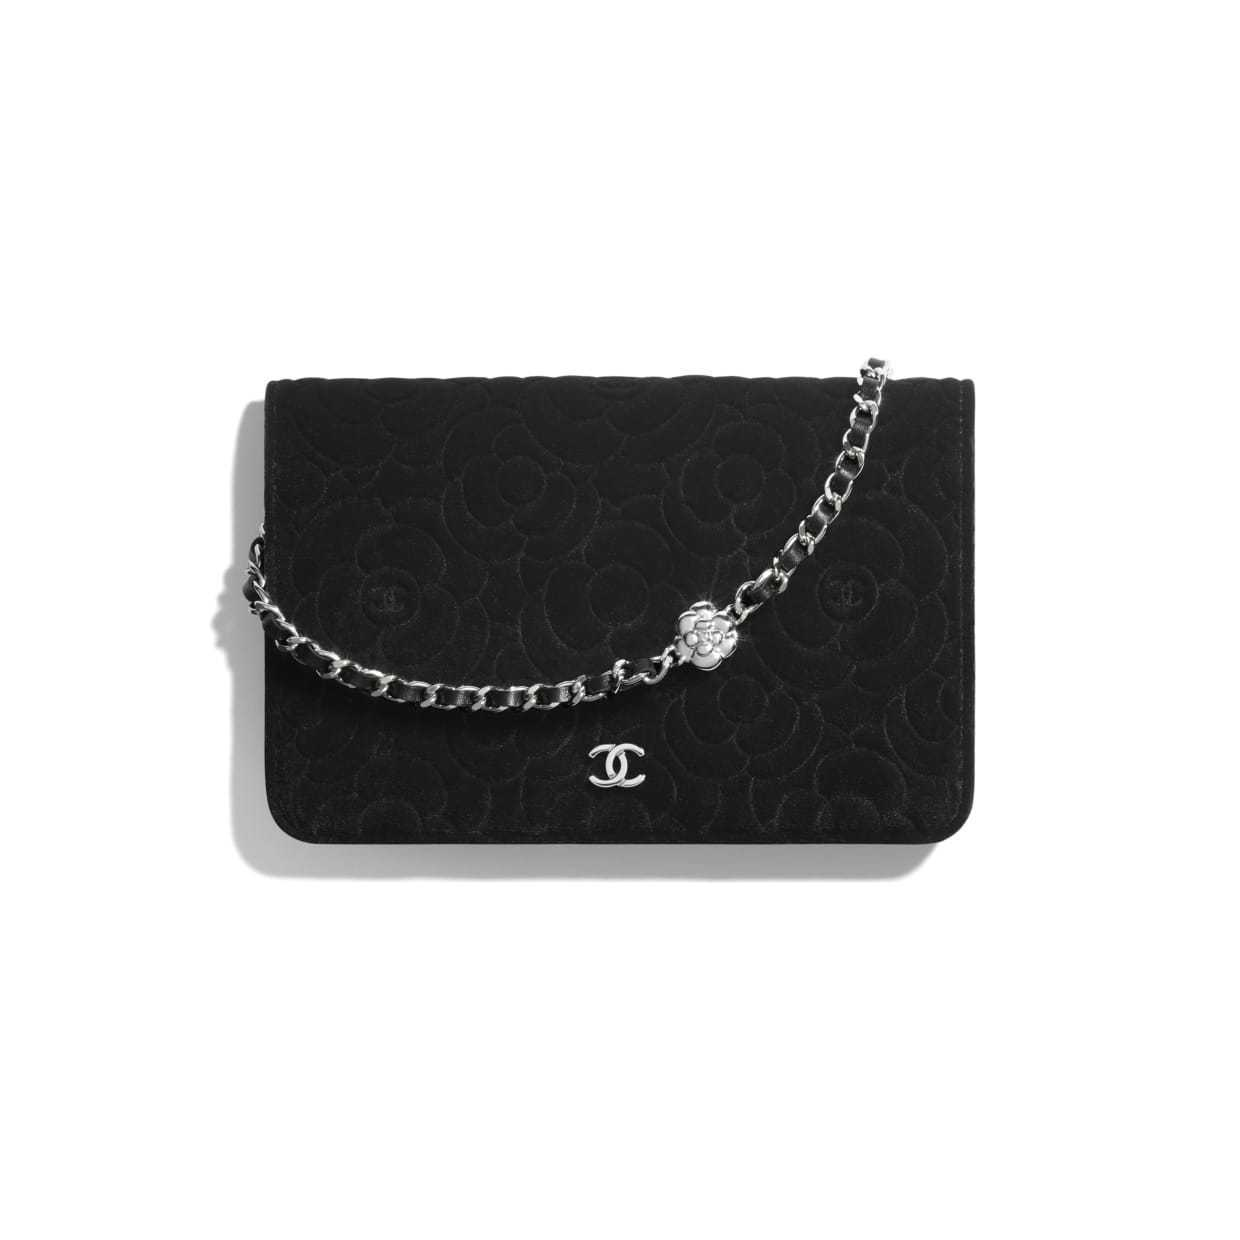 CHANEL CHANEL ☆wallet on chain ☆A82336 B04458 94305